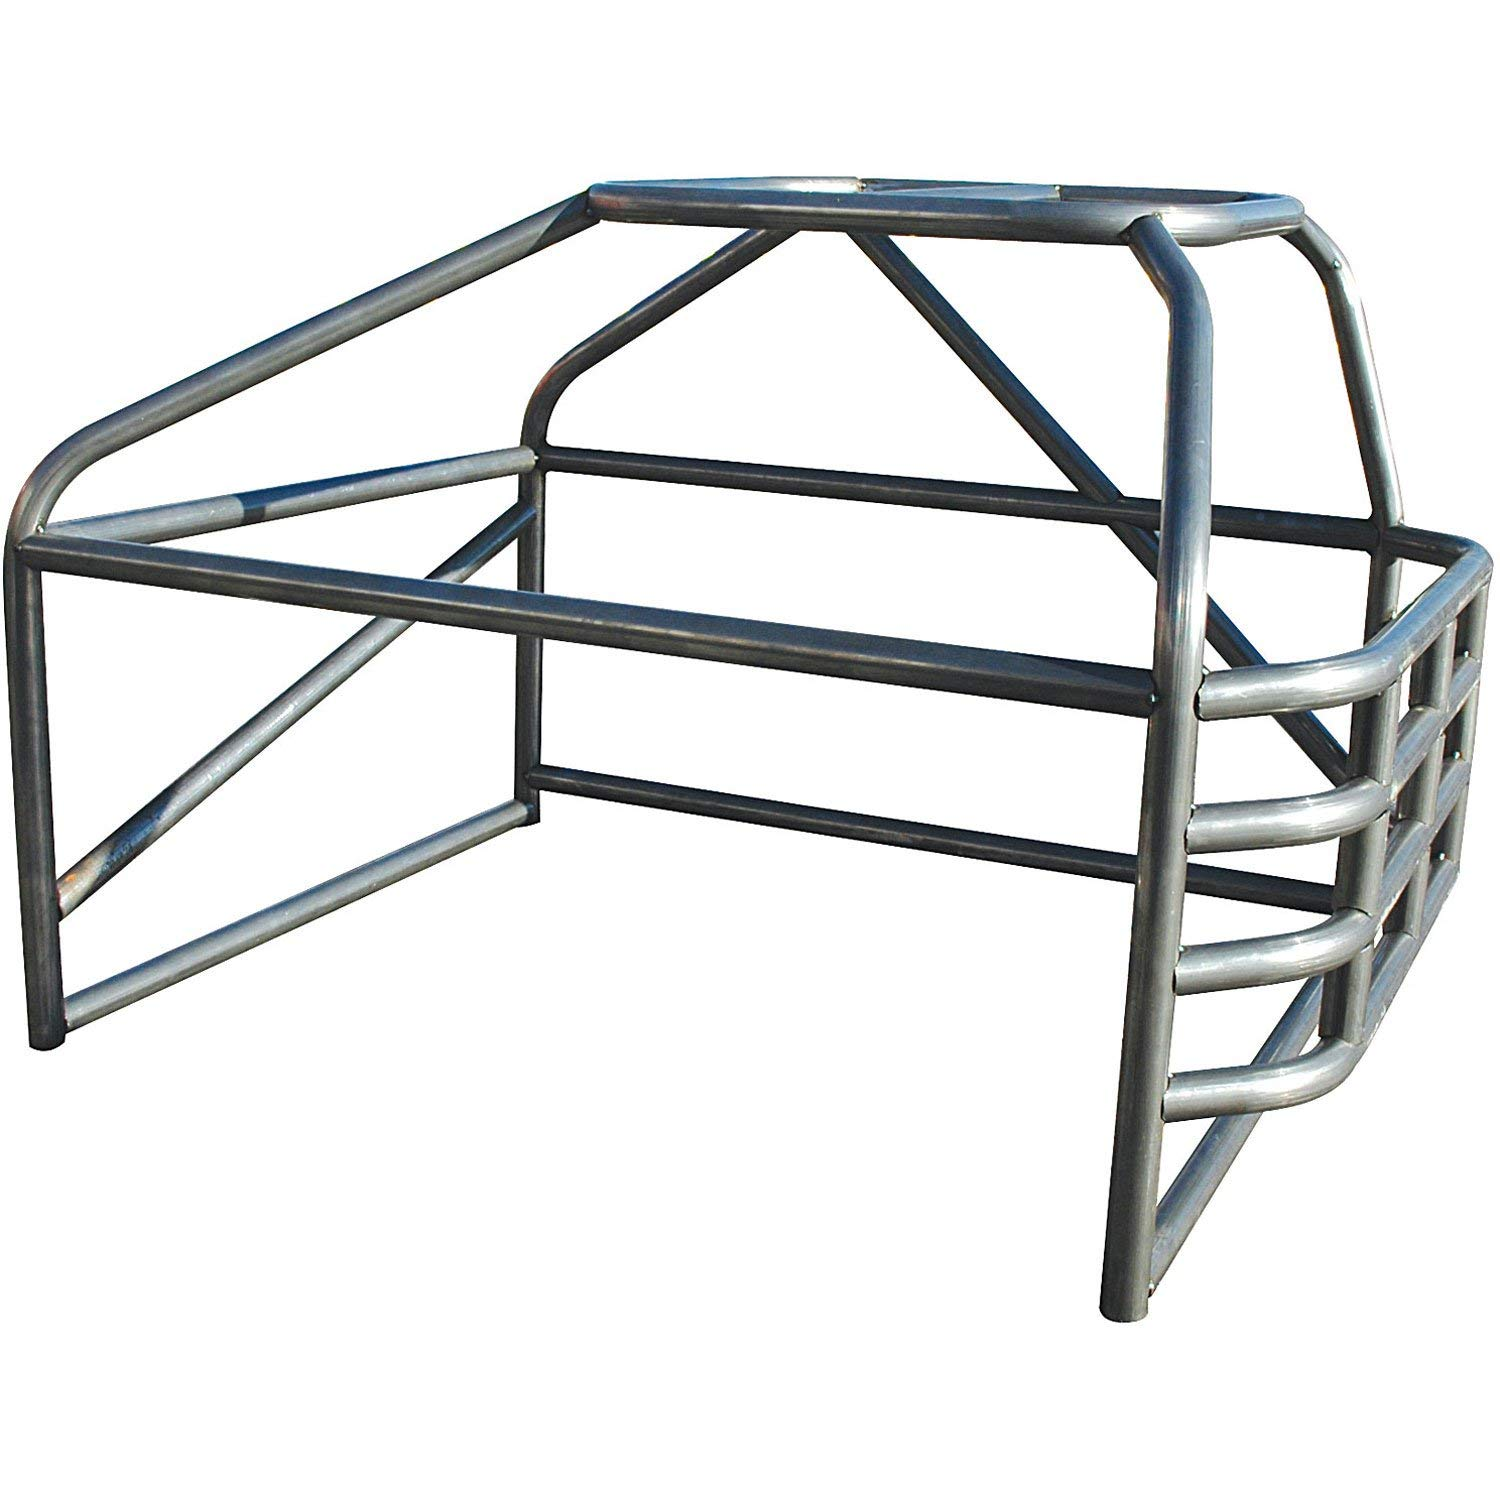 Allstar ALL22099 Roll Cage Kit Deluxe Offset Full Size Metric